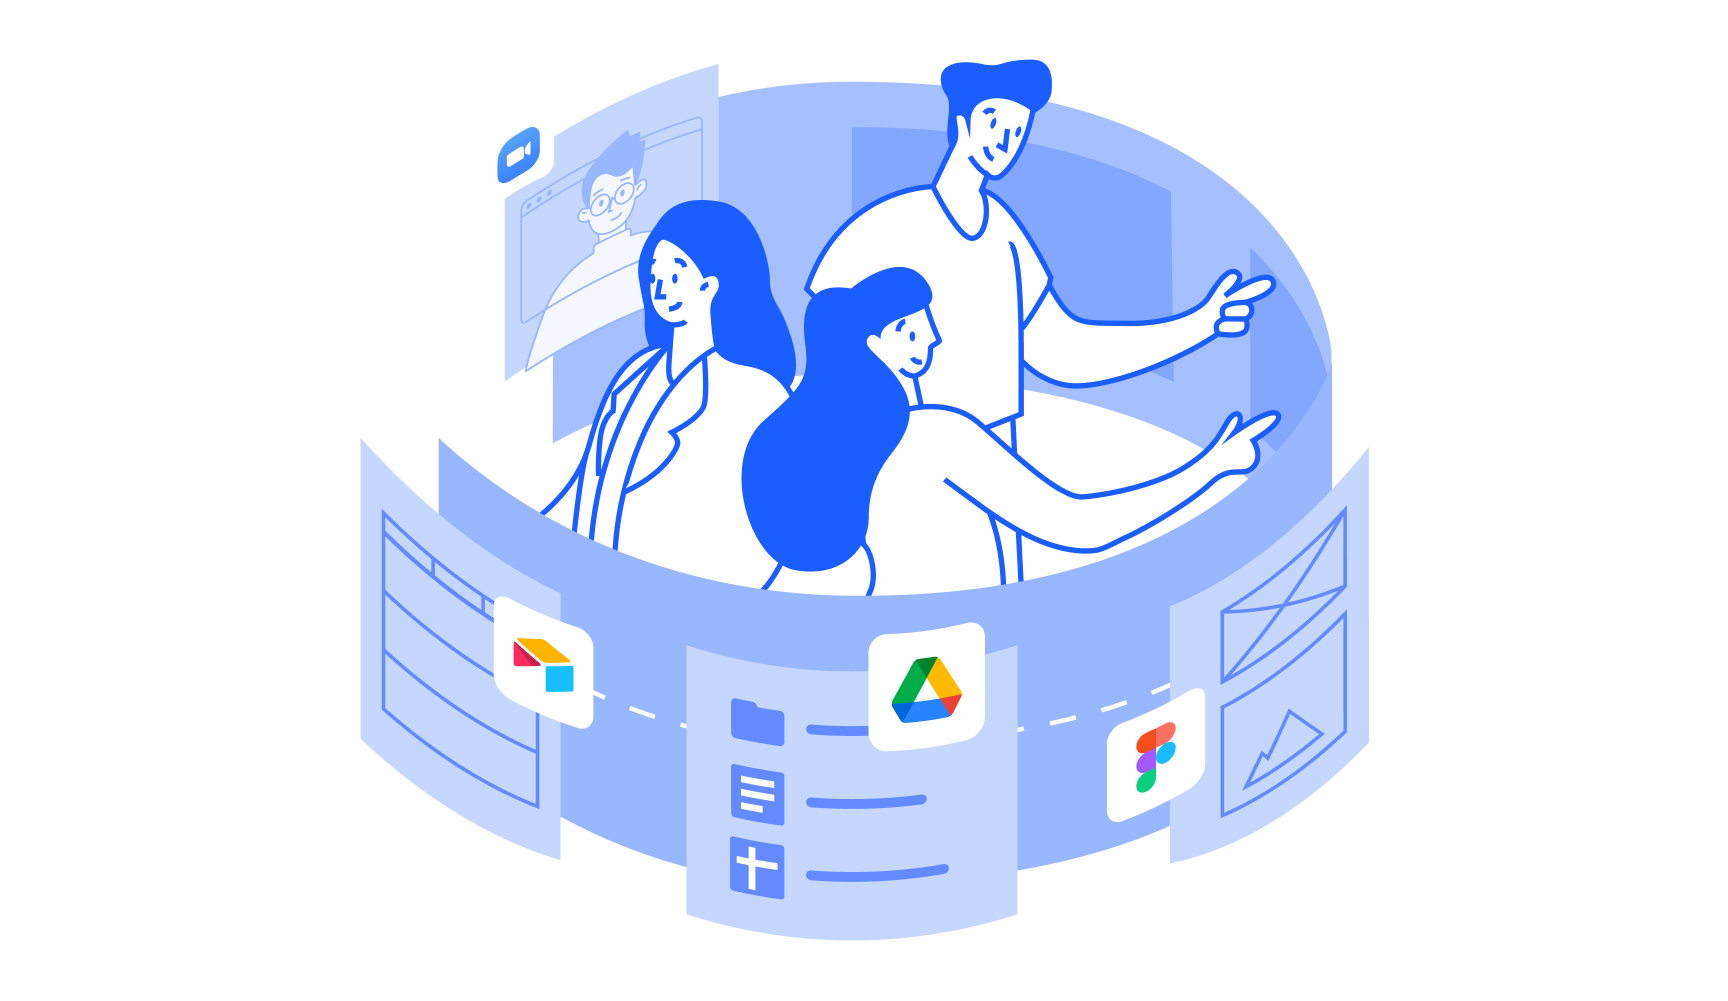 An illustration of a workspace surrounding a team with all their project work: docs, folders, video chats, etc.